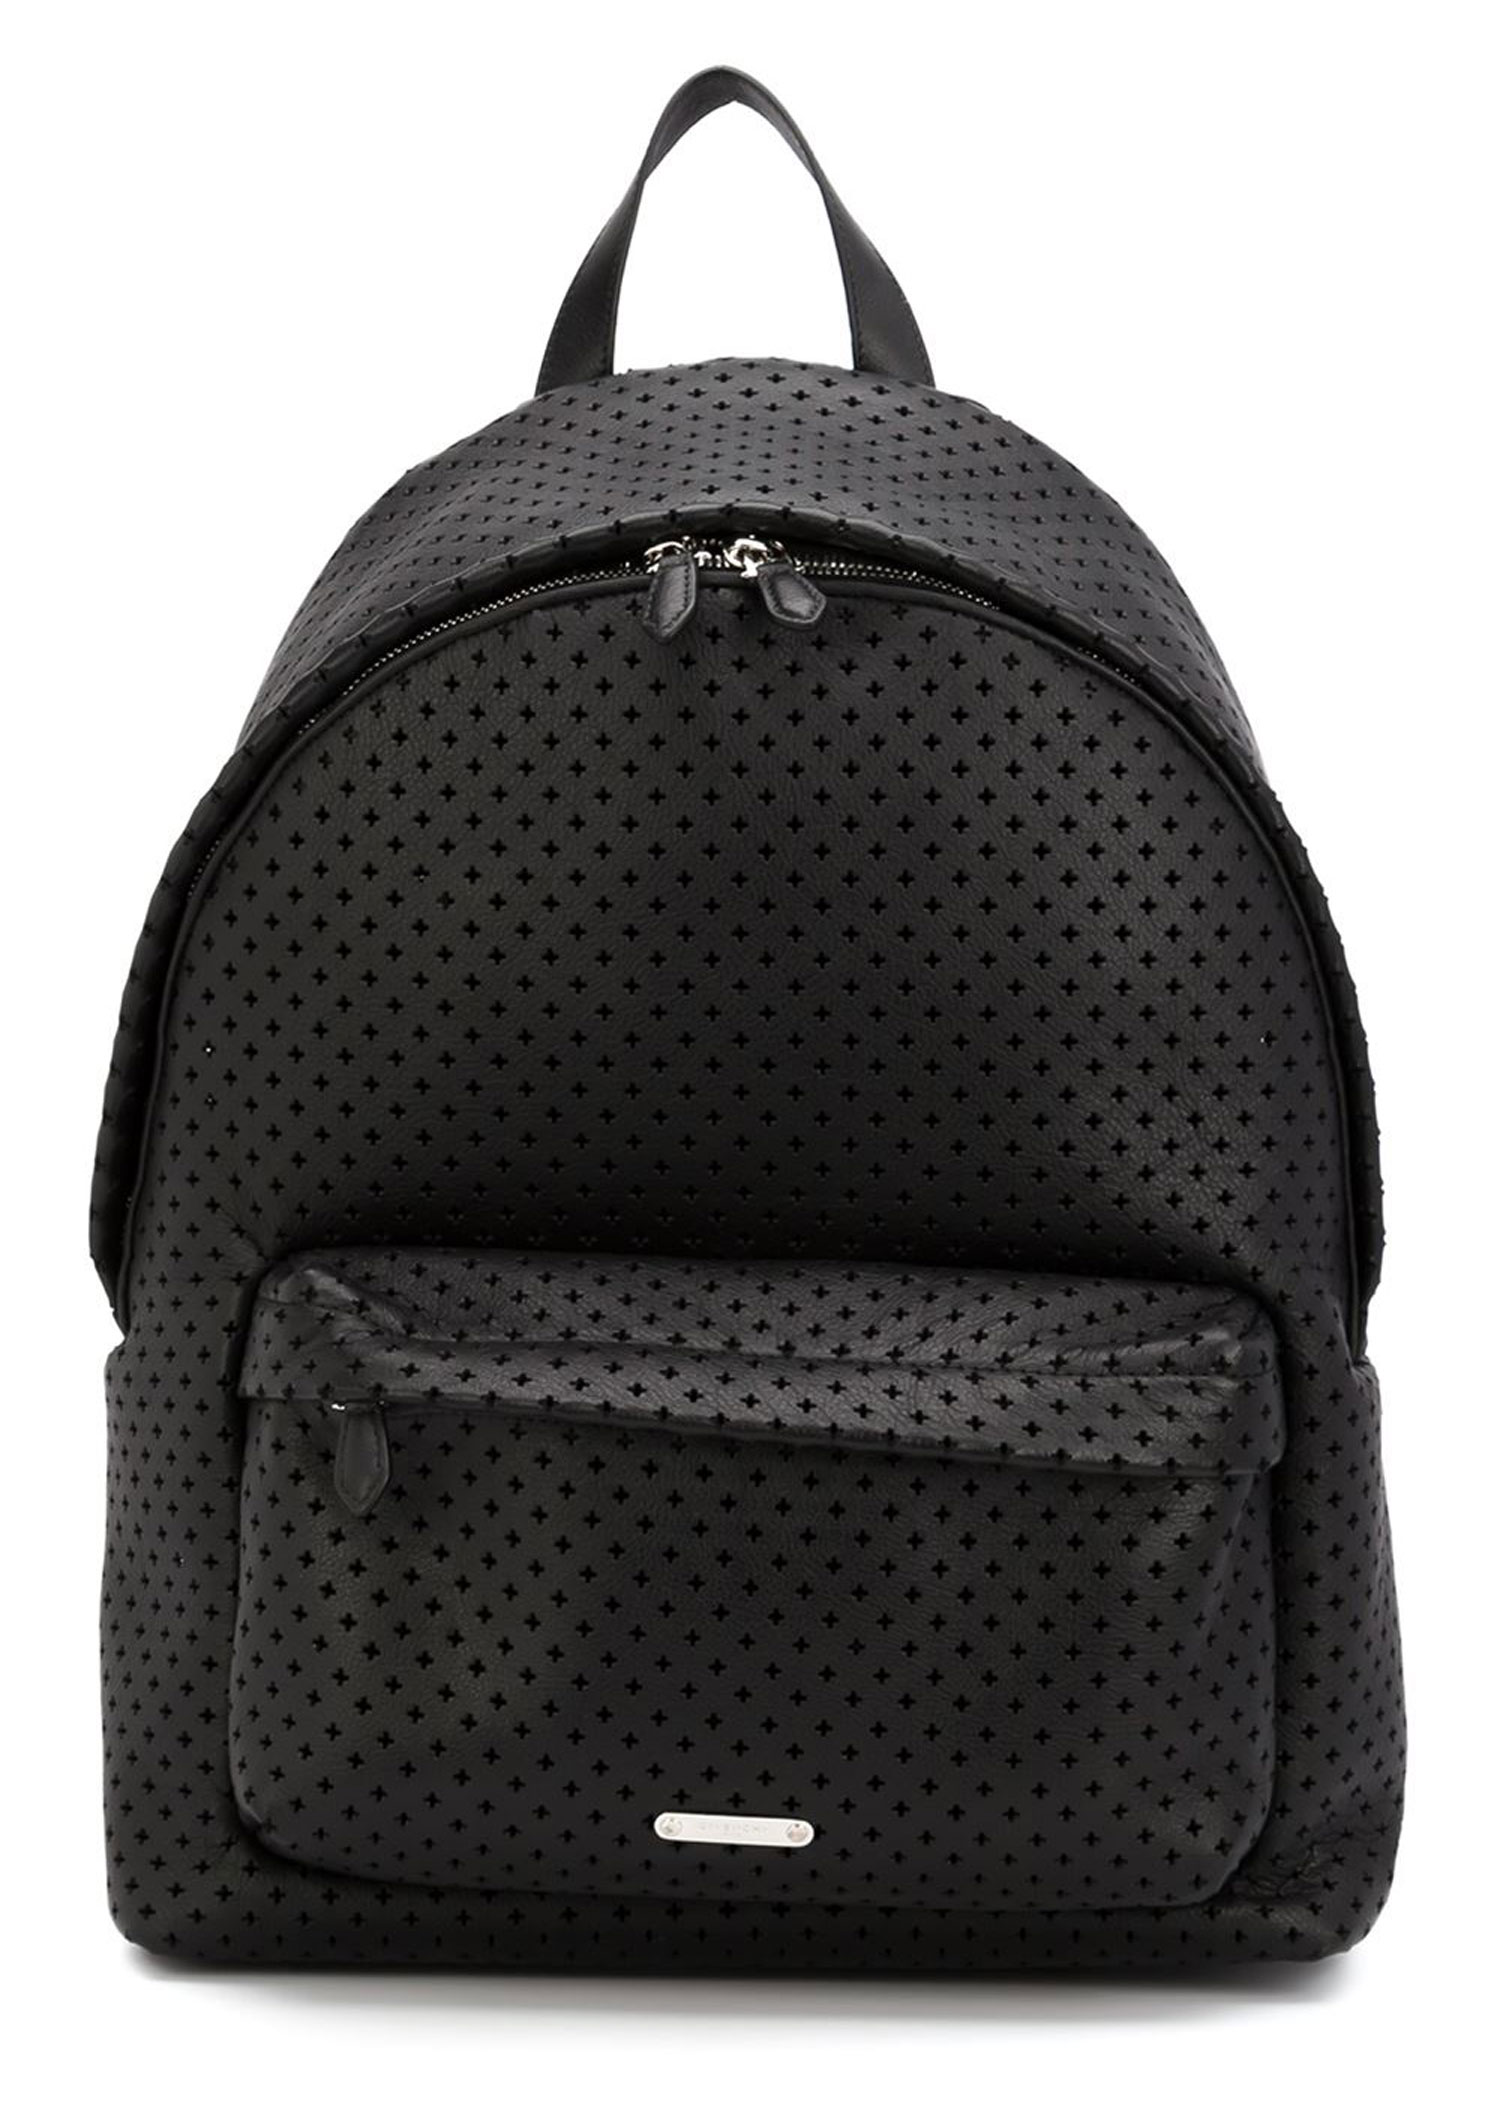 Trend-Lasercut-Herrenmode-Cut-Out-Fashion-Rucksack-Givenchy